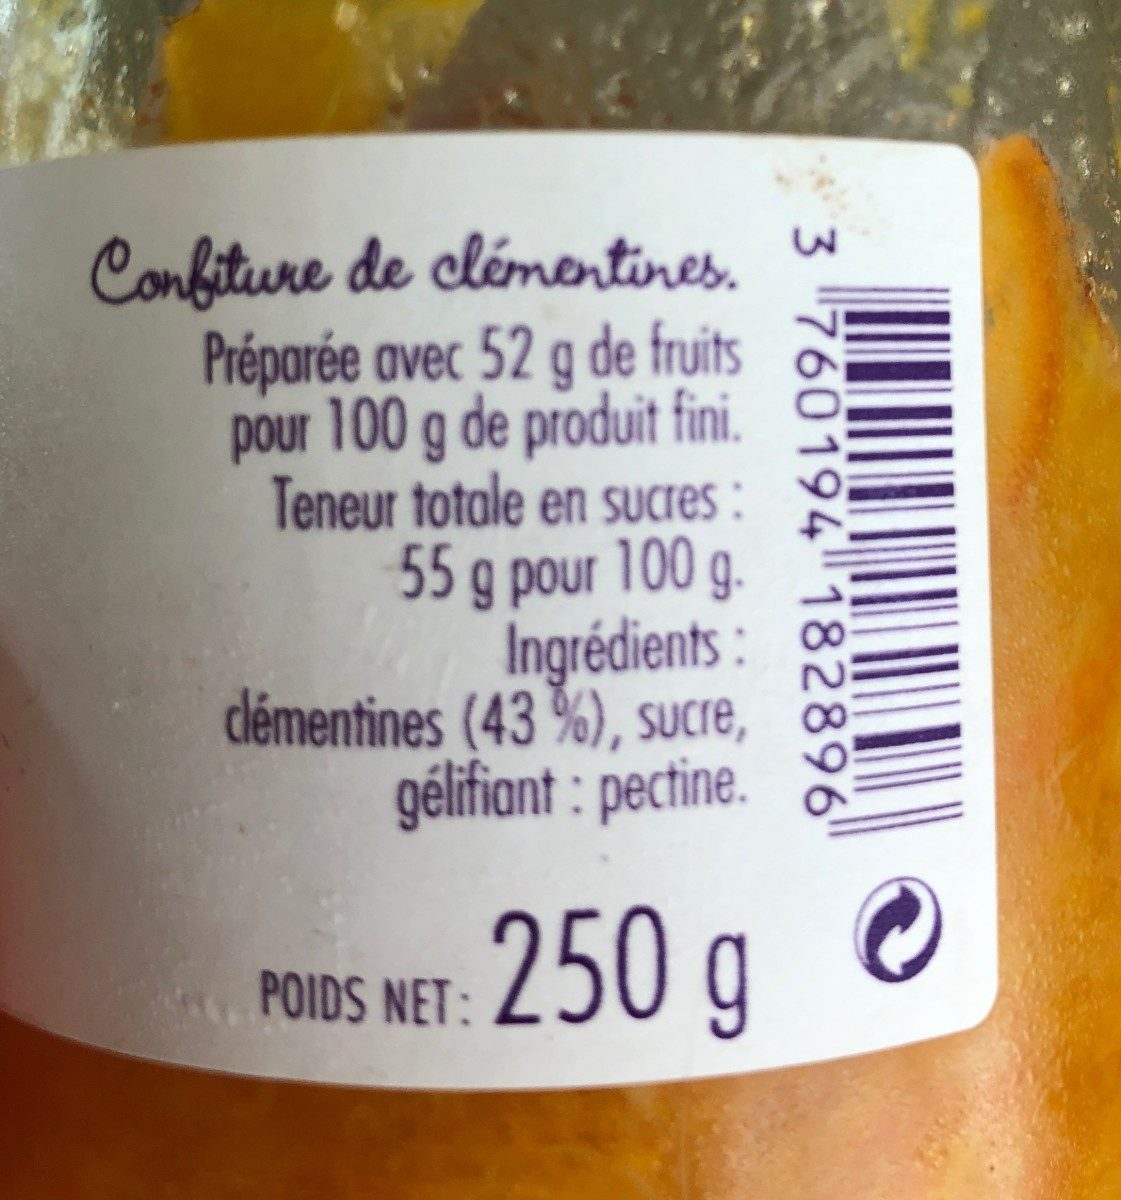 Confiture de clementines de Corse - Ingredients - fr